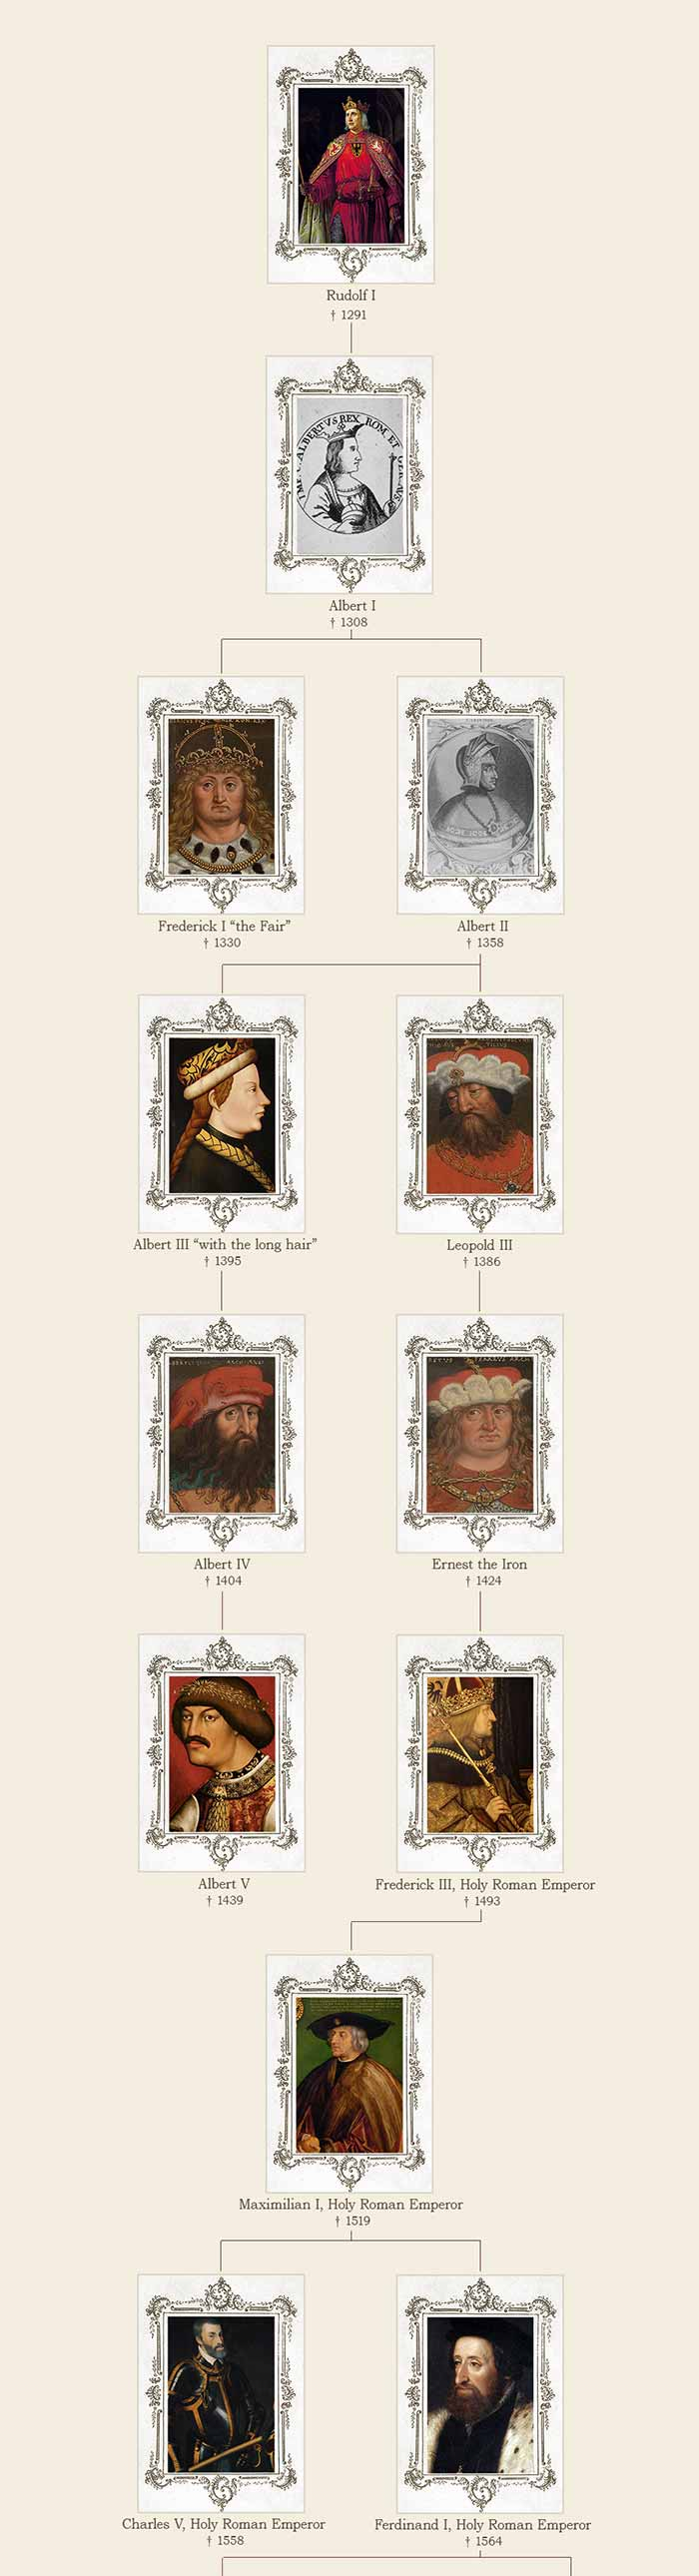 A picture of the family connections of the Habsburg dynasty